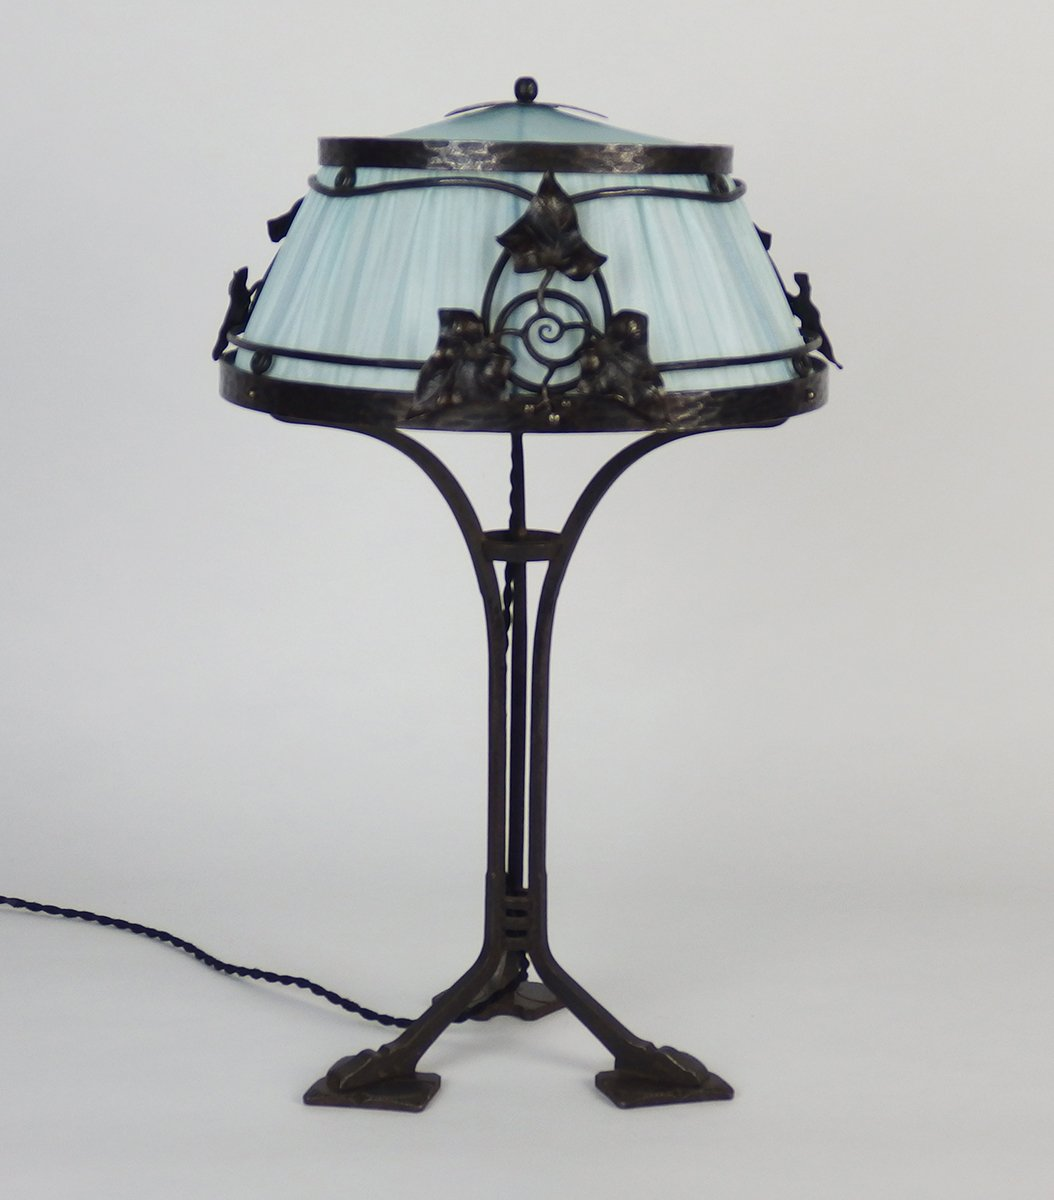 Lovely French Wrought Iron Table Lamp, 1910s